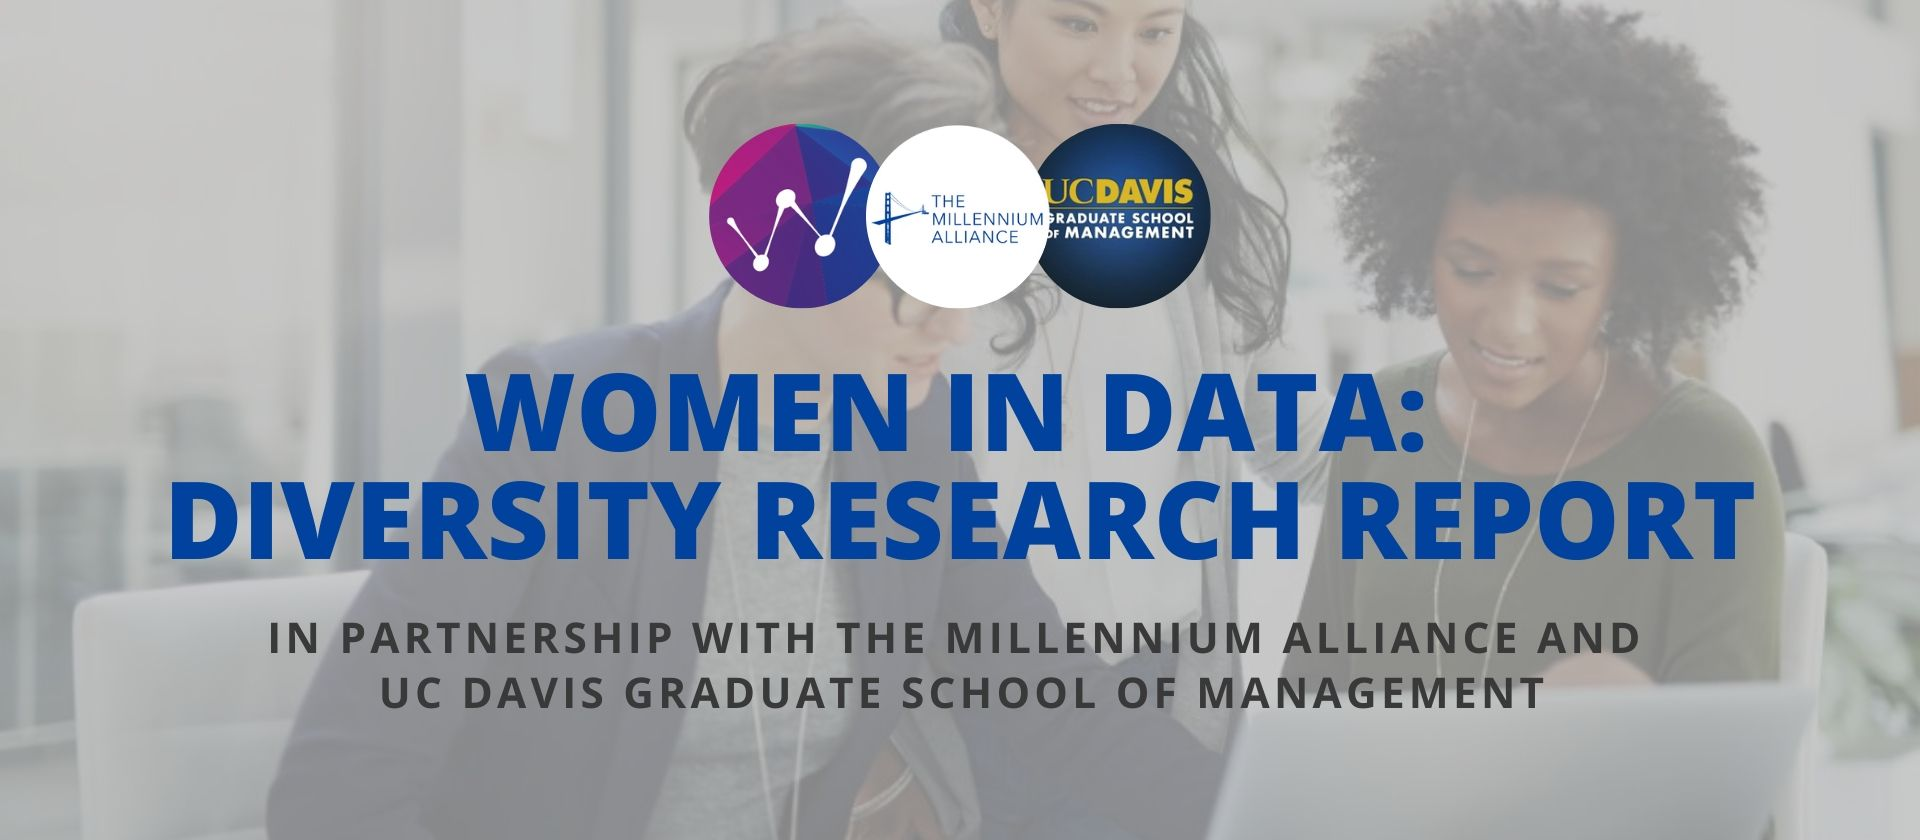 Women in Data Diversity Research Report